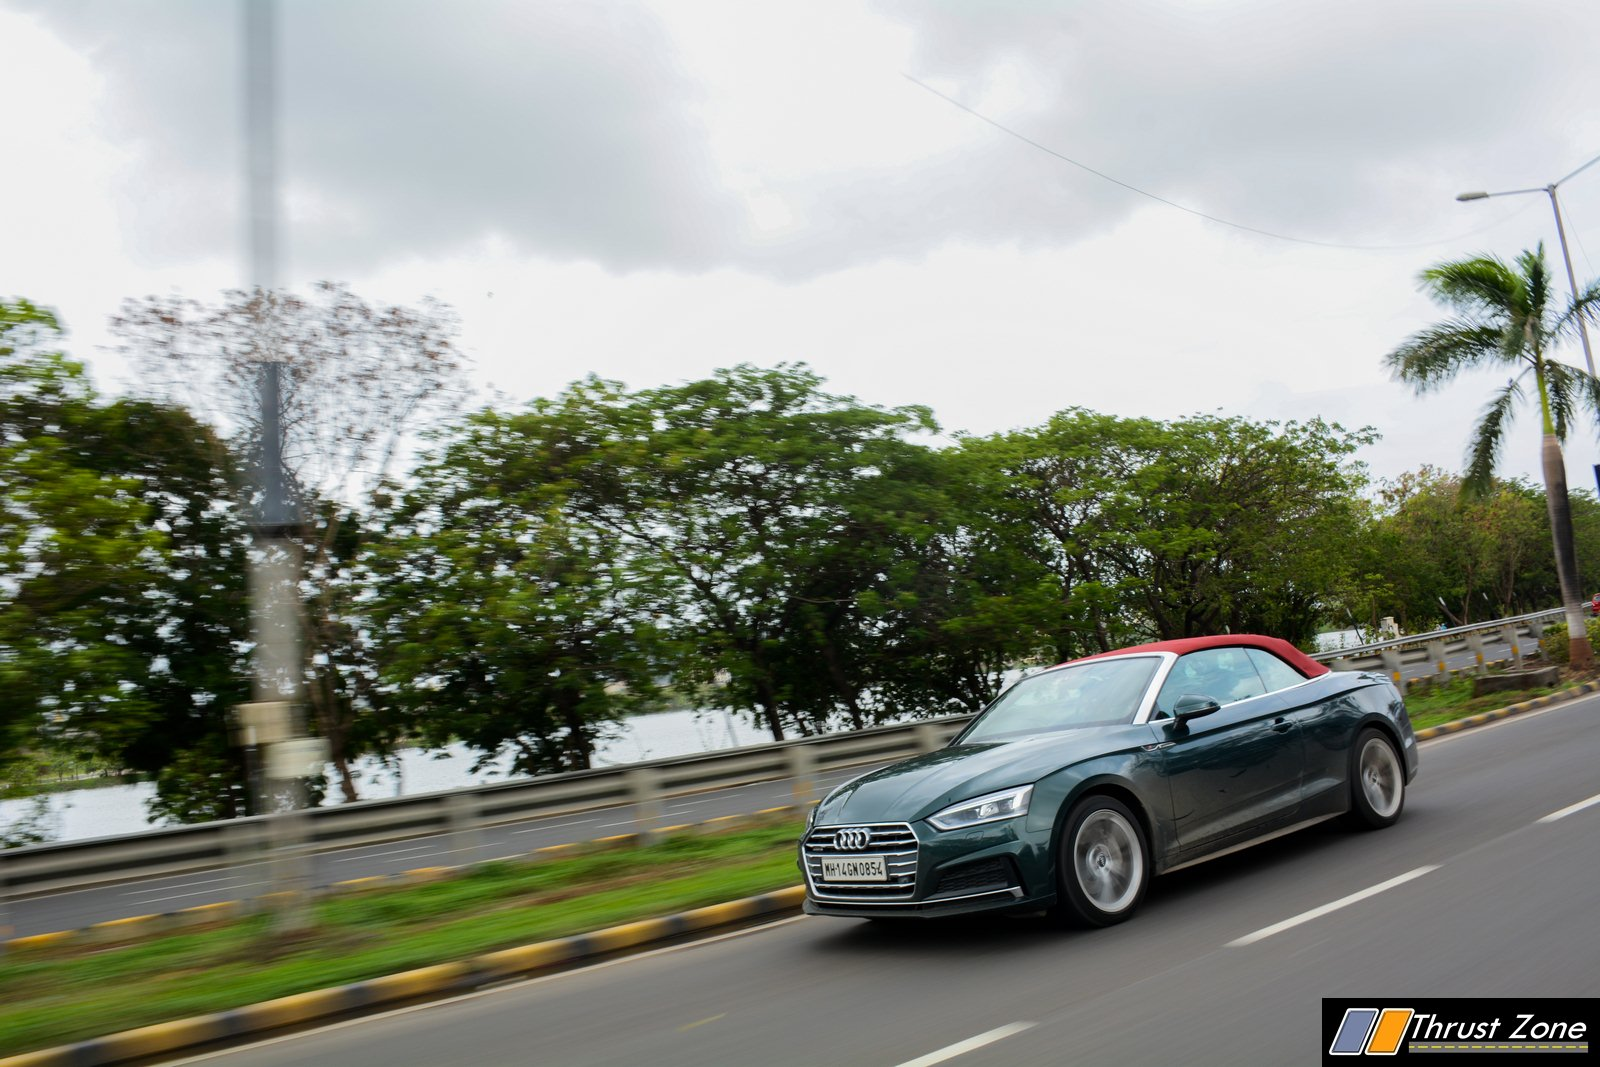 https://www.thrustzone.com/wp-content/uploads/2019/06/2019-Audi-A5-Cabriolet-Convertible-India-Diesel-Review-6.jpg